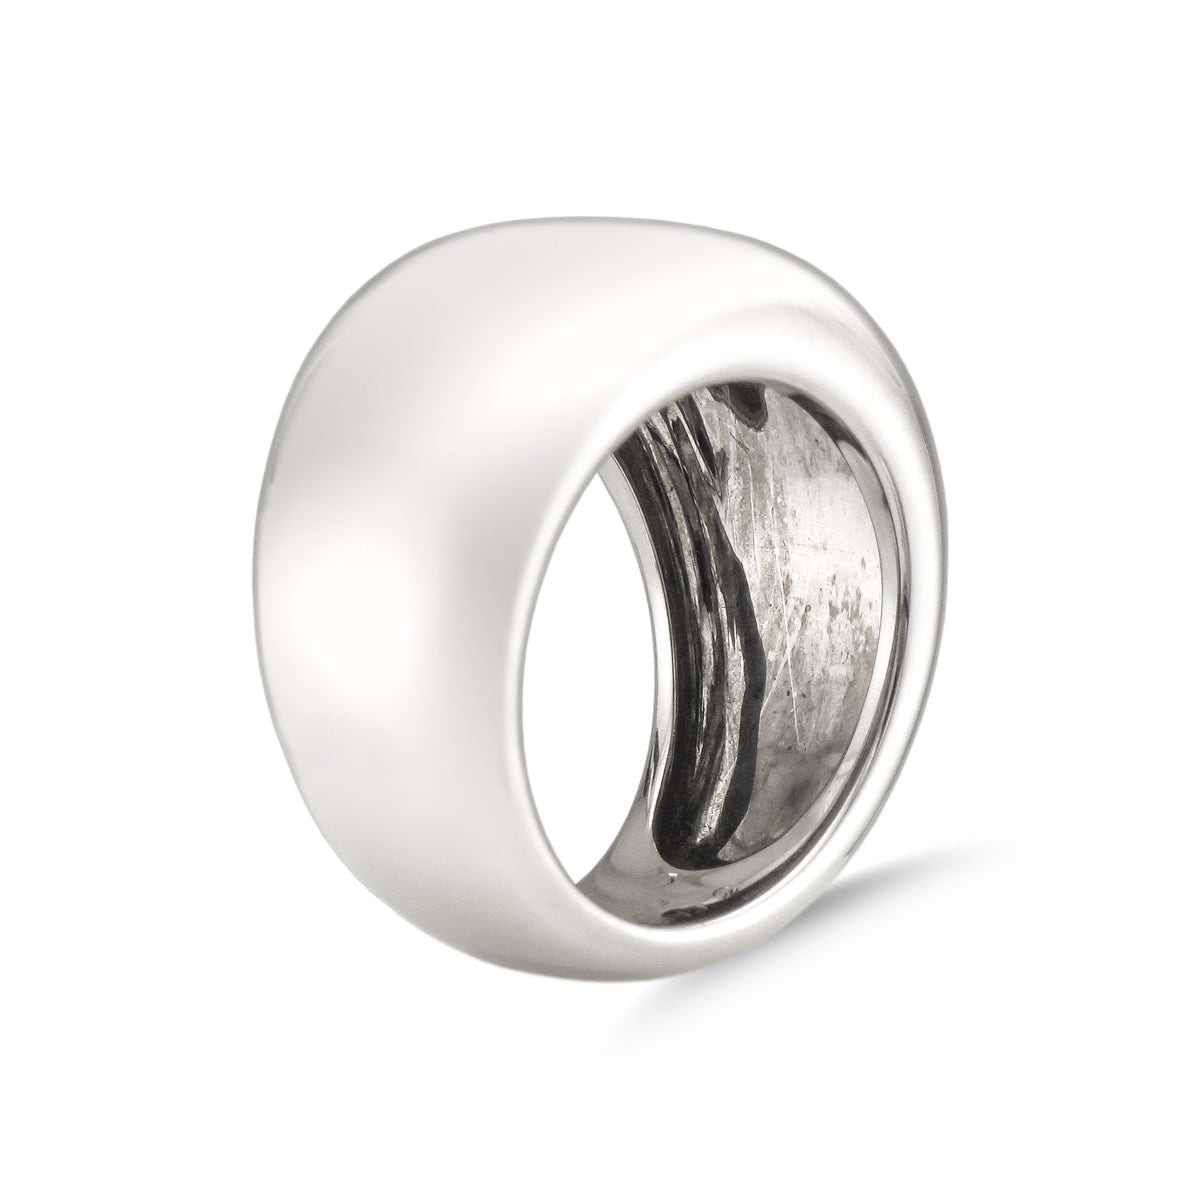 Cartier 18ct White Gold Nouvelle Vague Ring